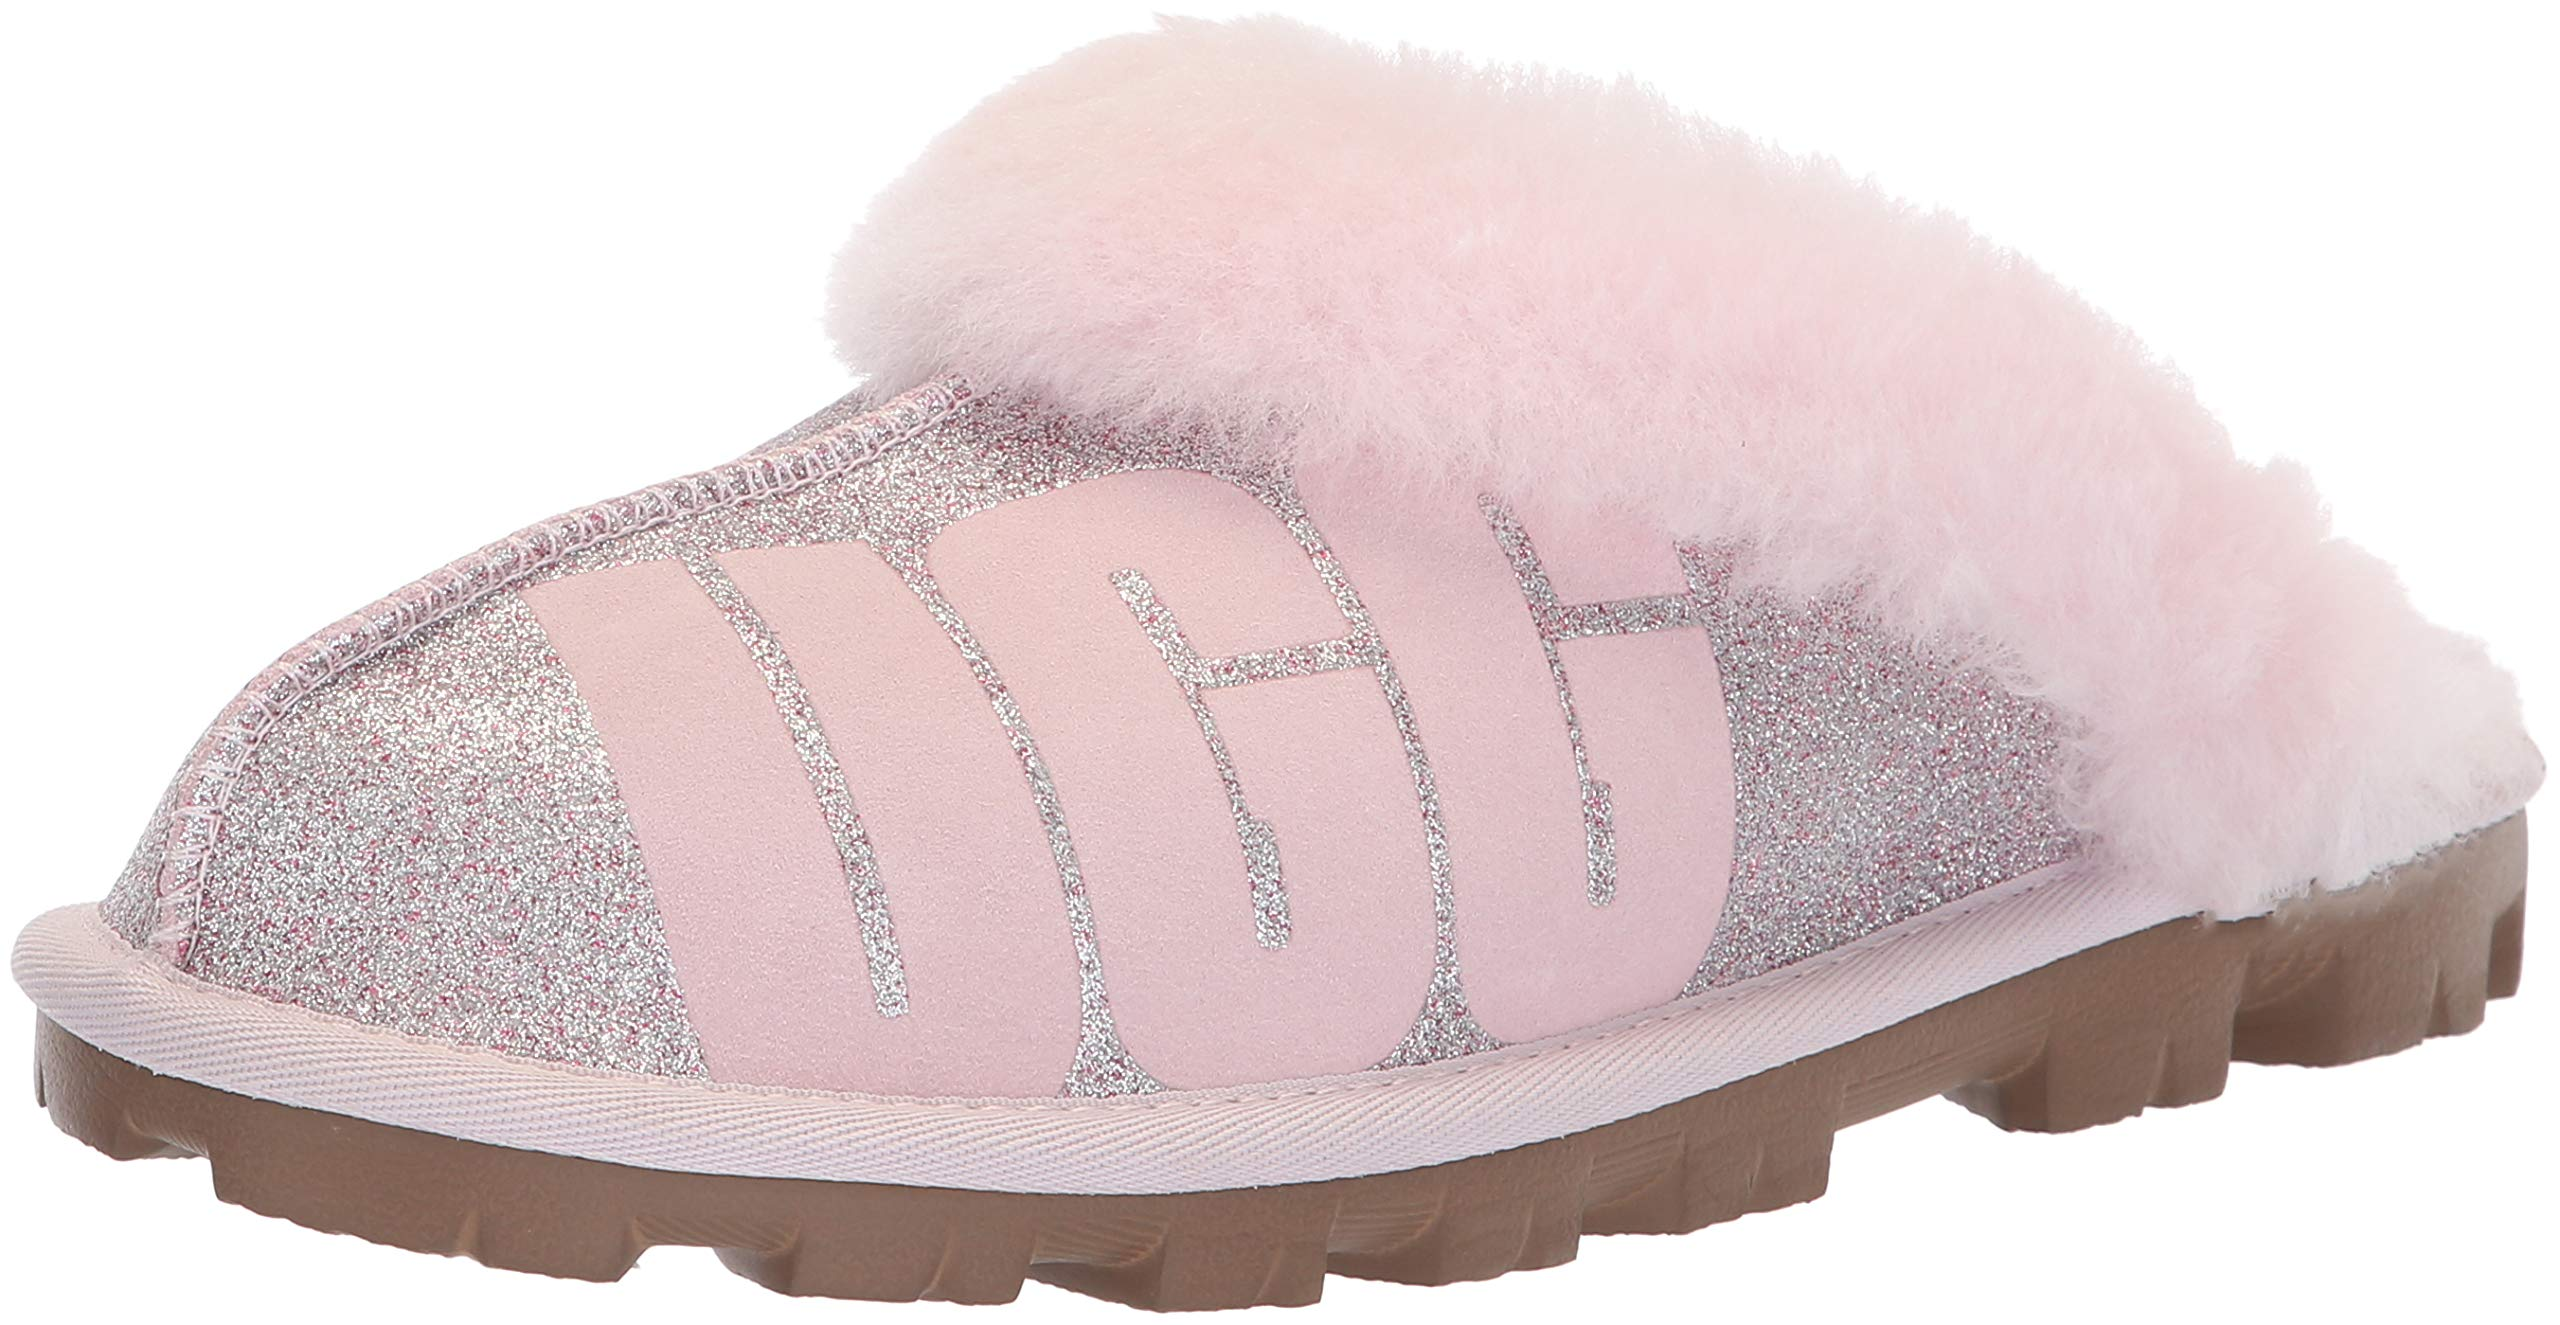 7a87cd312f9 UGG Women's W Coquette Sparkle Slipper -